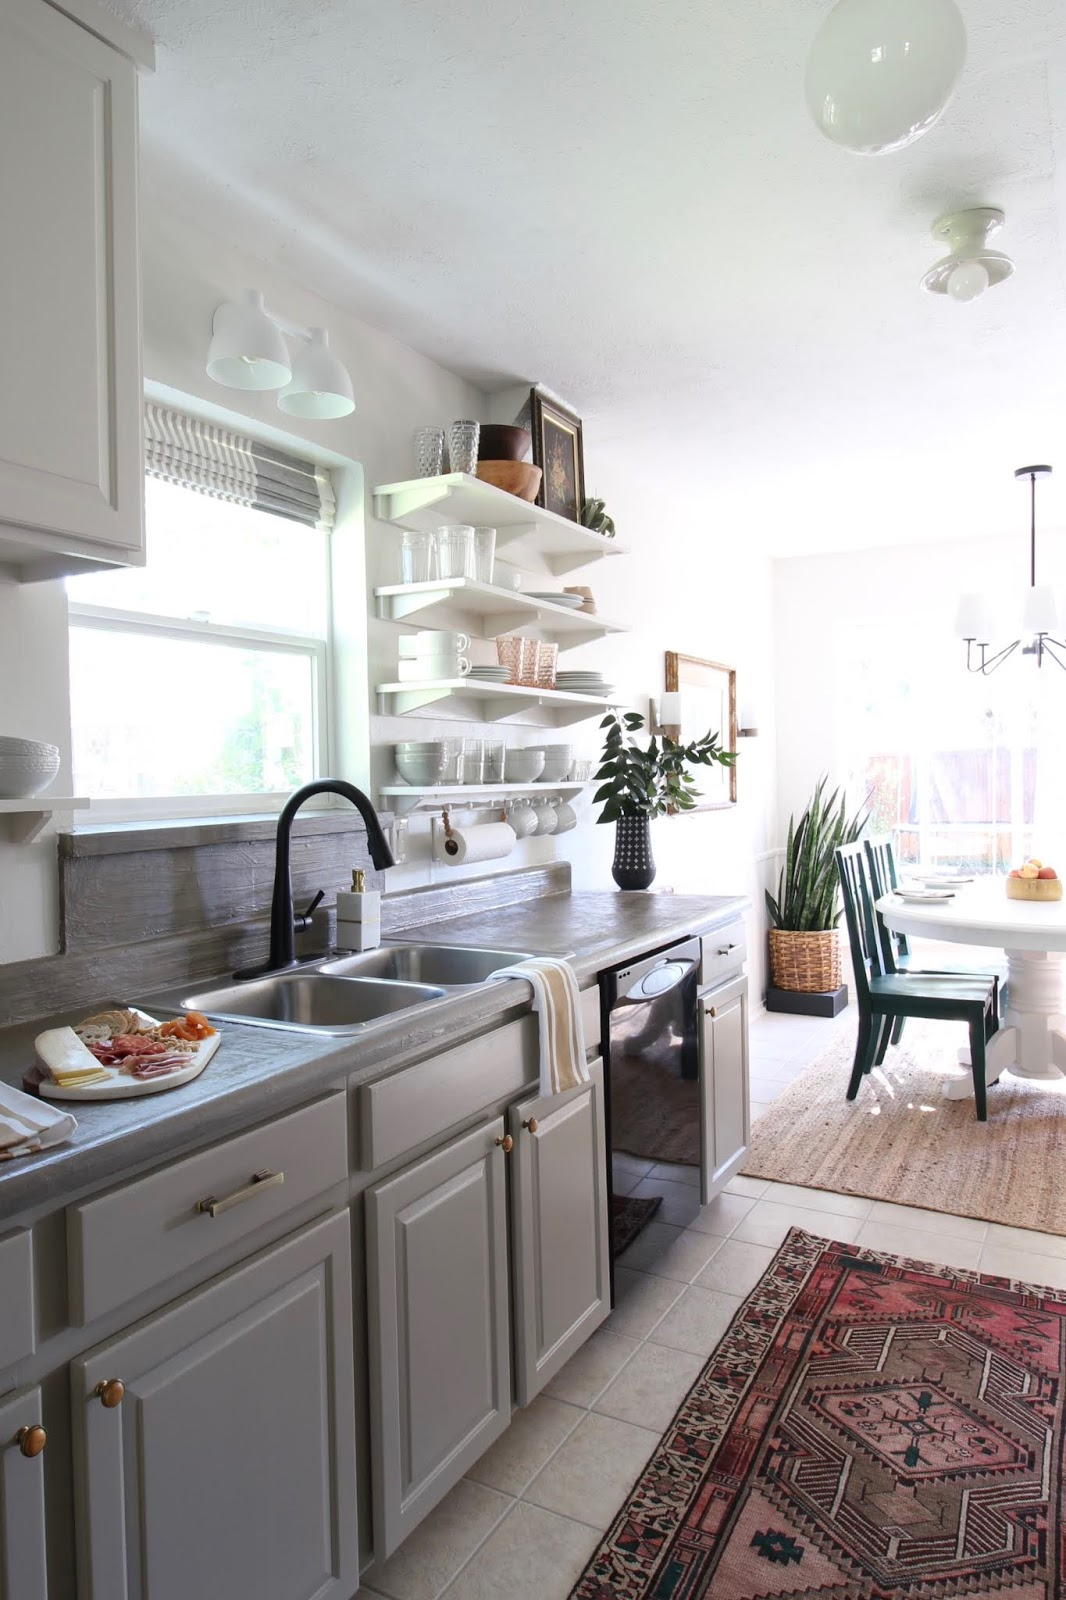 One room challenge budget kitchen makeover concrete counter tops | House Homemade